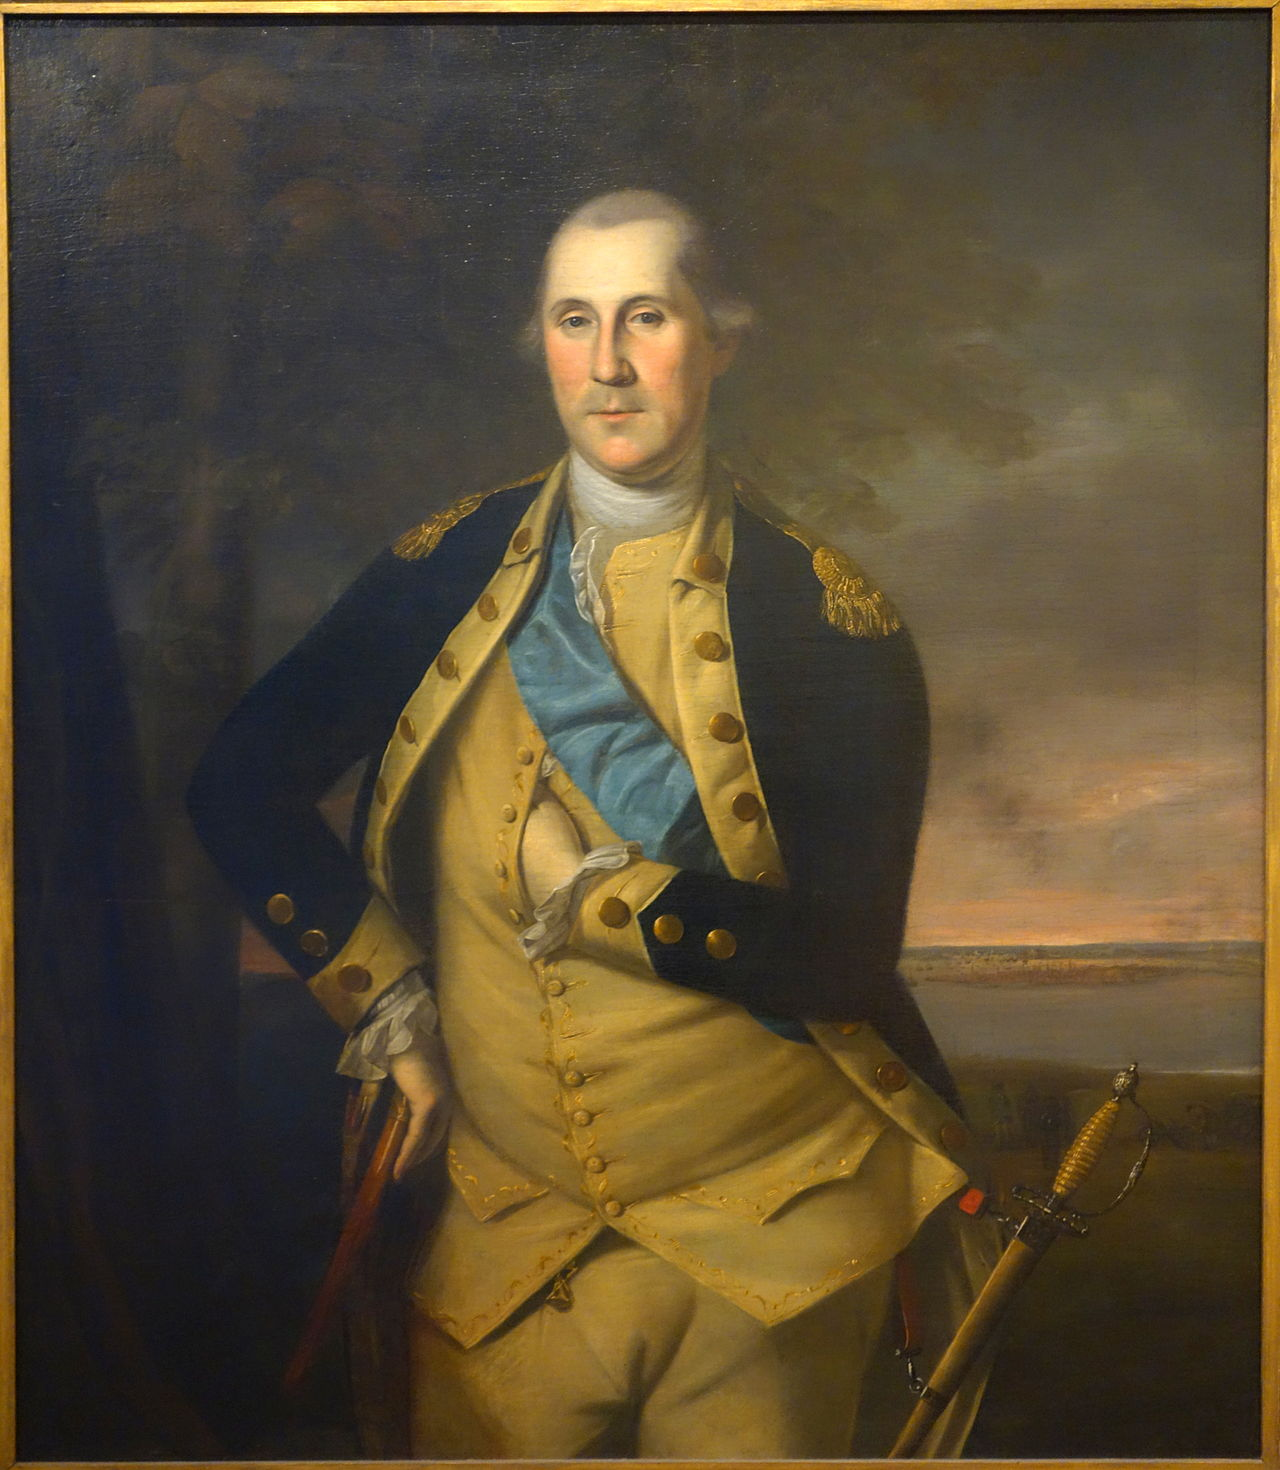 George Washington, painted by Charles Willson Peale in 1776